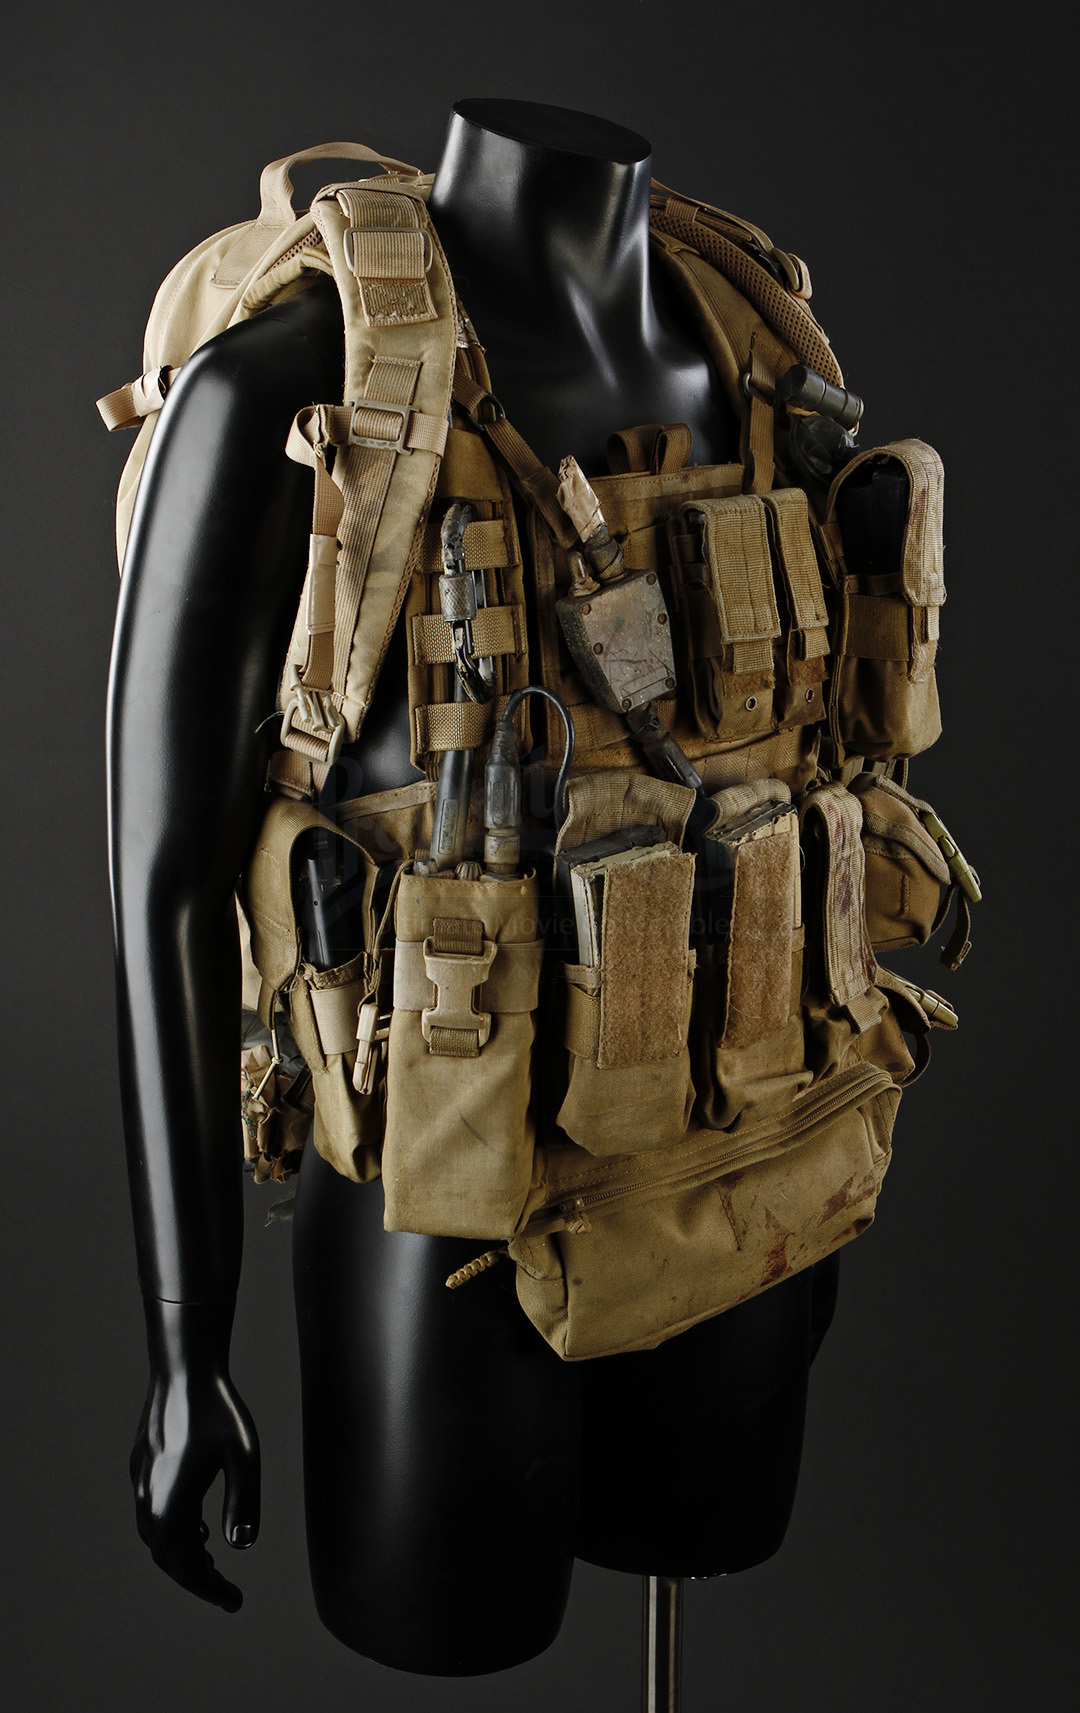 kelty map 3500 with Matt Axe Axelsons Ben Foster Tactical Gear And Handgun on Index likewise Amron Map 3500 Three Day Assault Pack By Kelty Desert Tan further 24340 Kelty Tactical likewise Kelty Map 3500 Three Day Assault Pack additionally Watch.